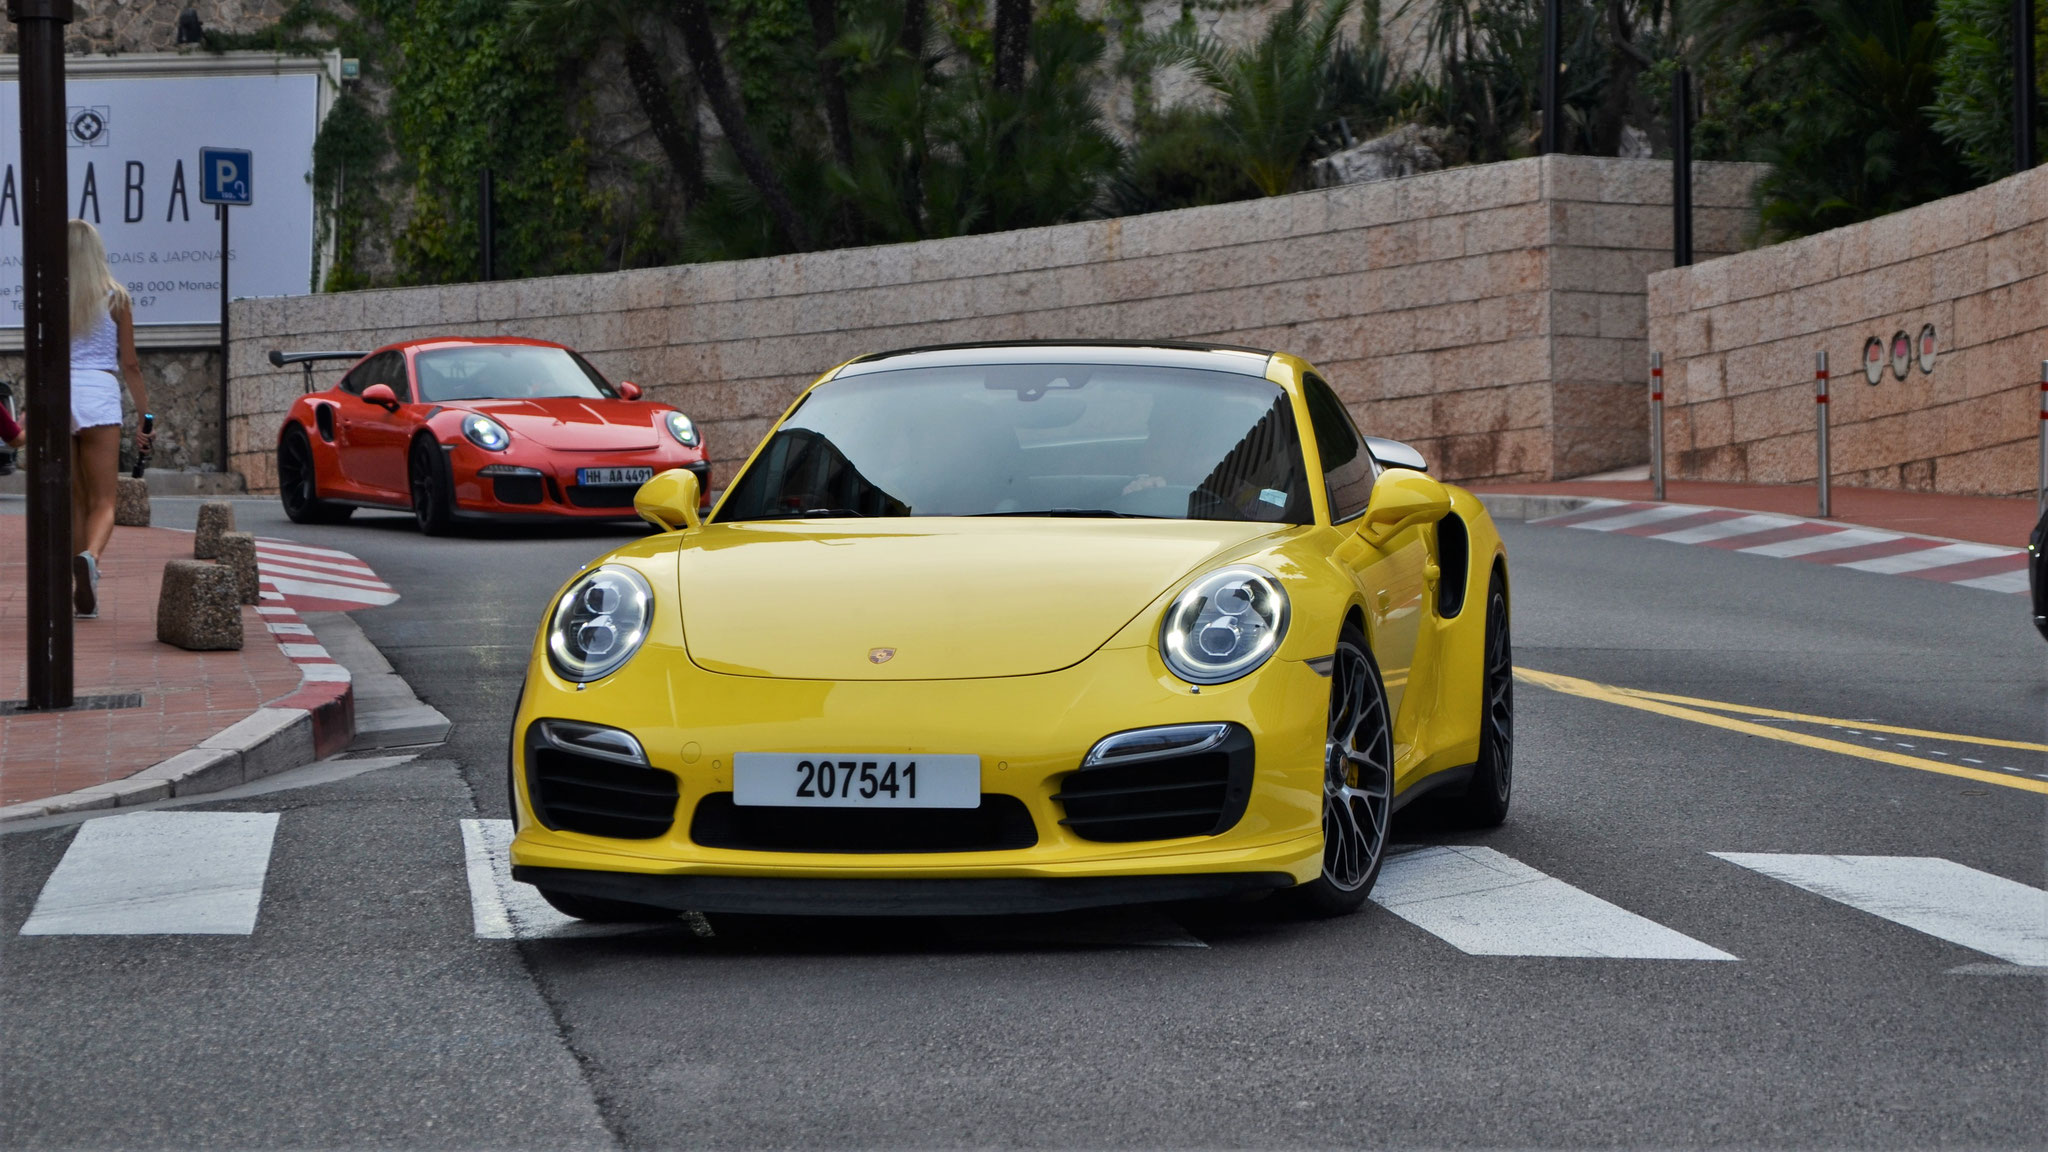 Porsche 911 Turbo S - 207541 (Arab)